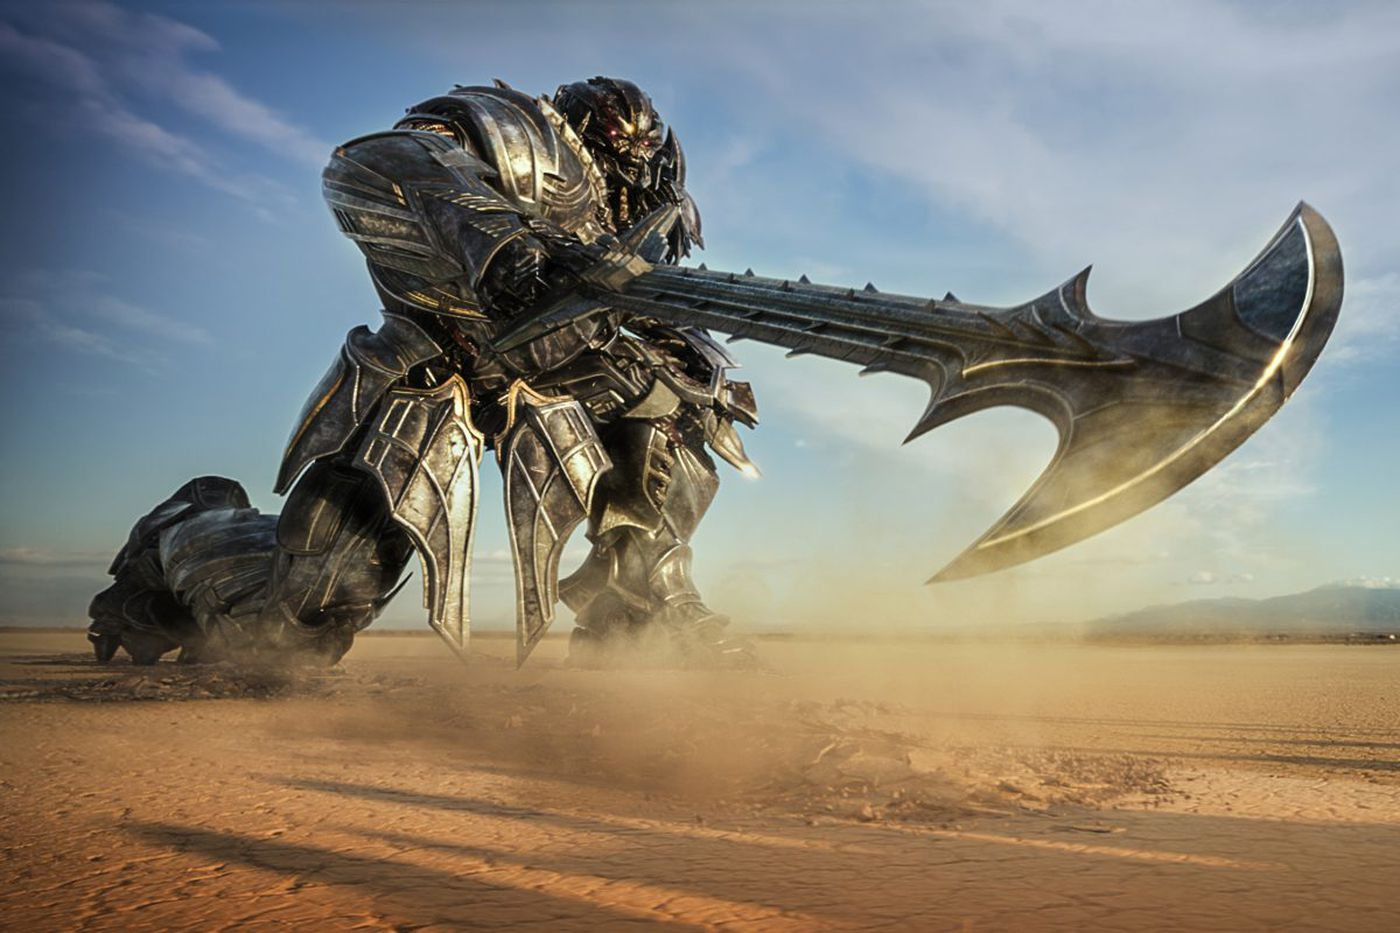 About 'Last Knight': Latest 'Transformers' movie a bit robotic